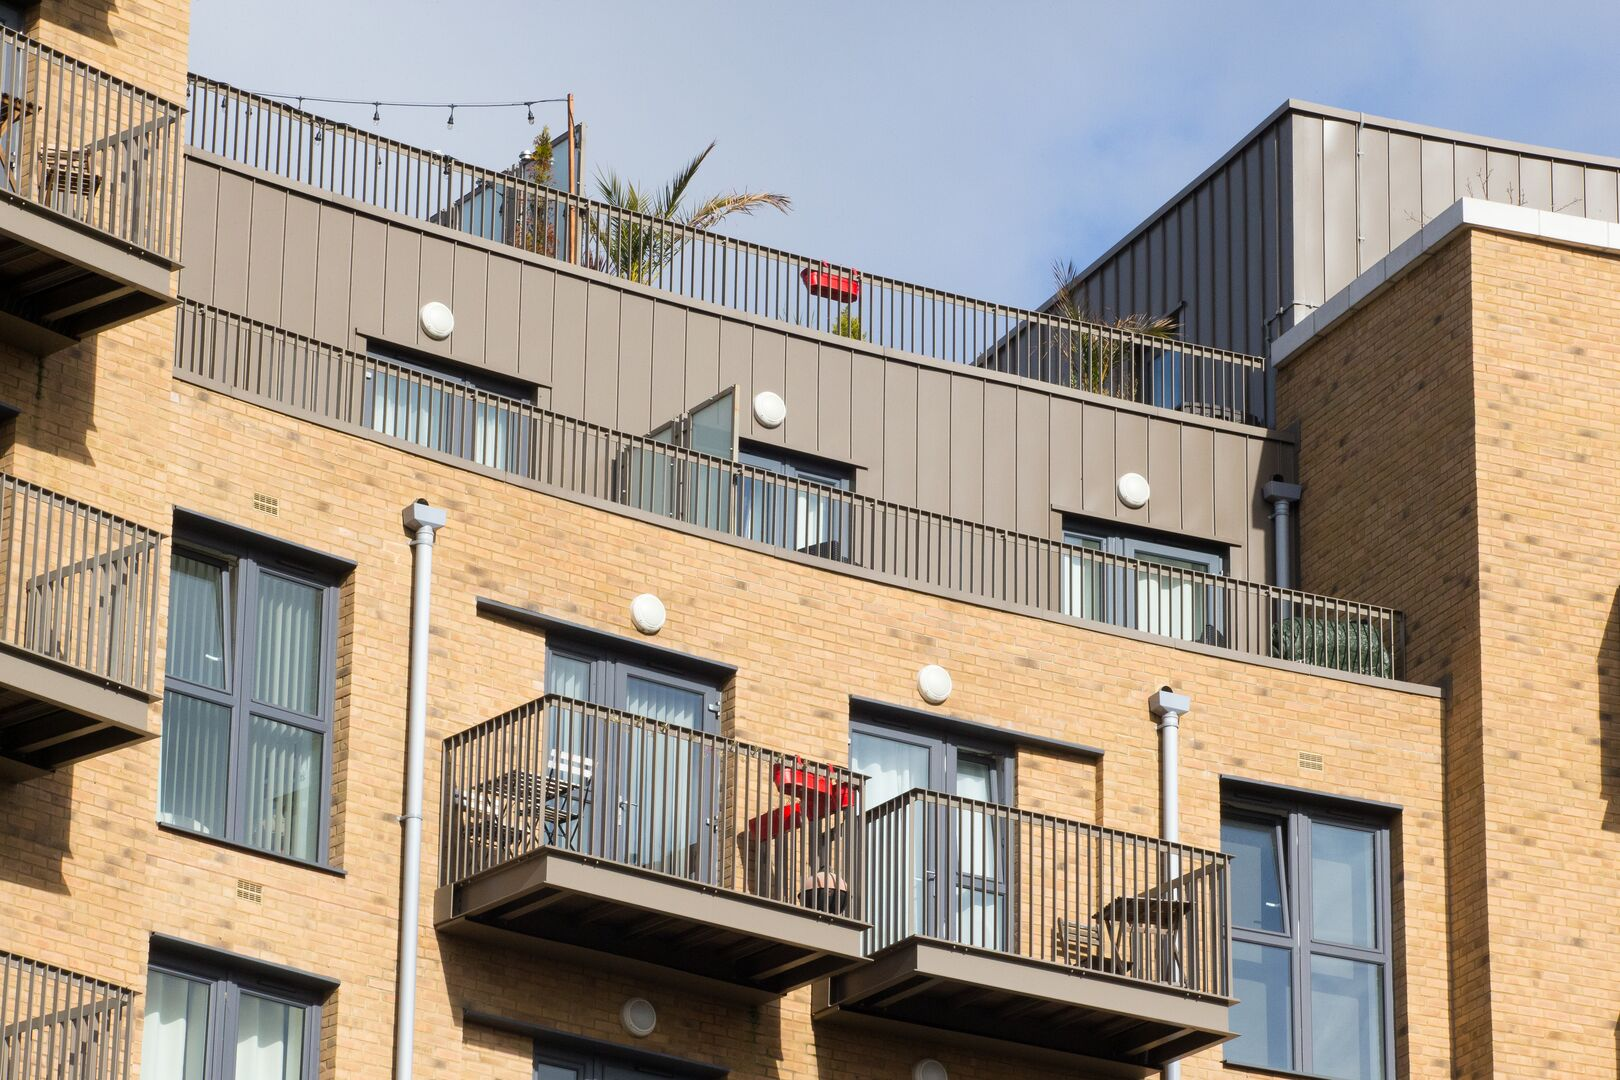 NSQ New South Quarter featuring Colorcoat Urban standing seam cladding